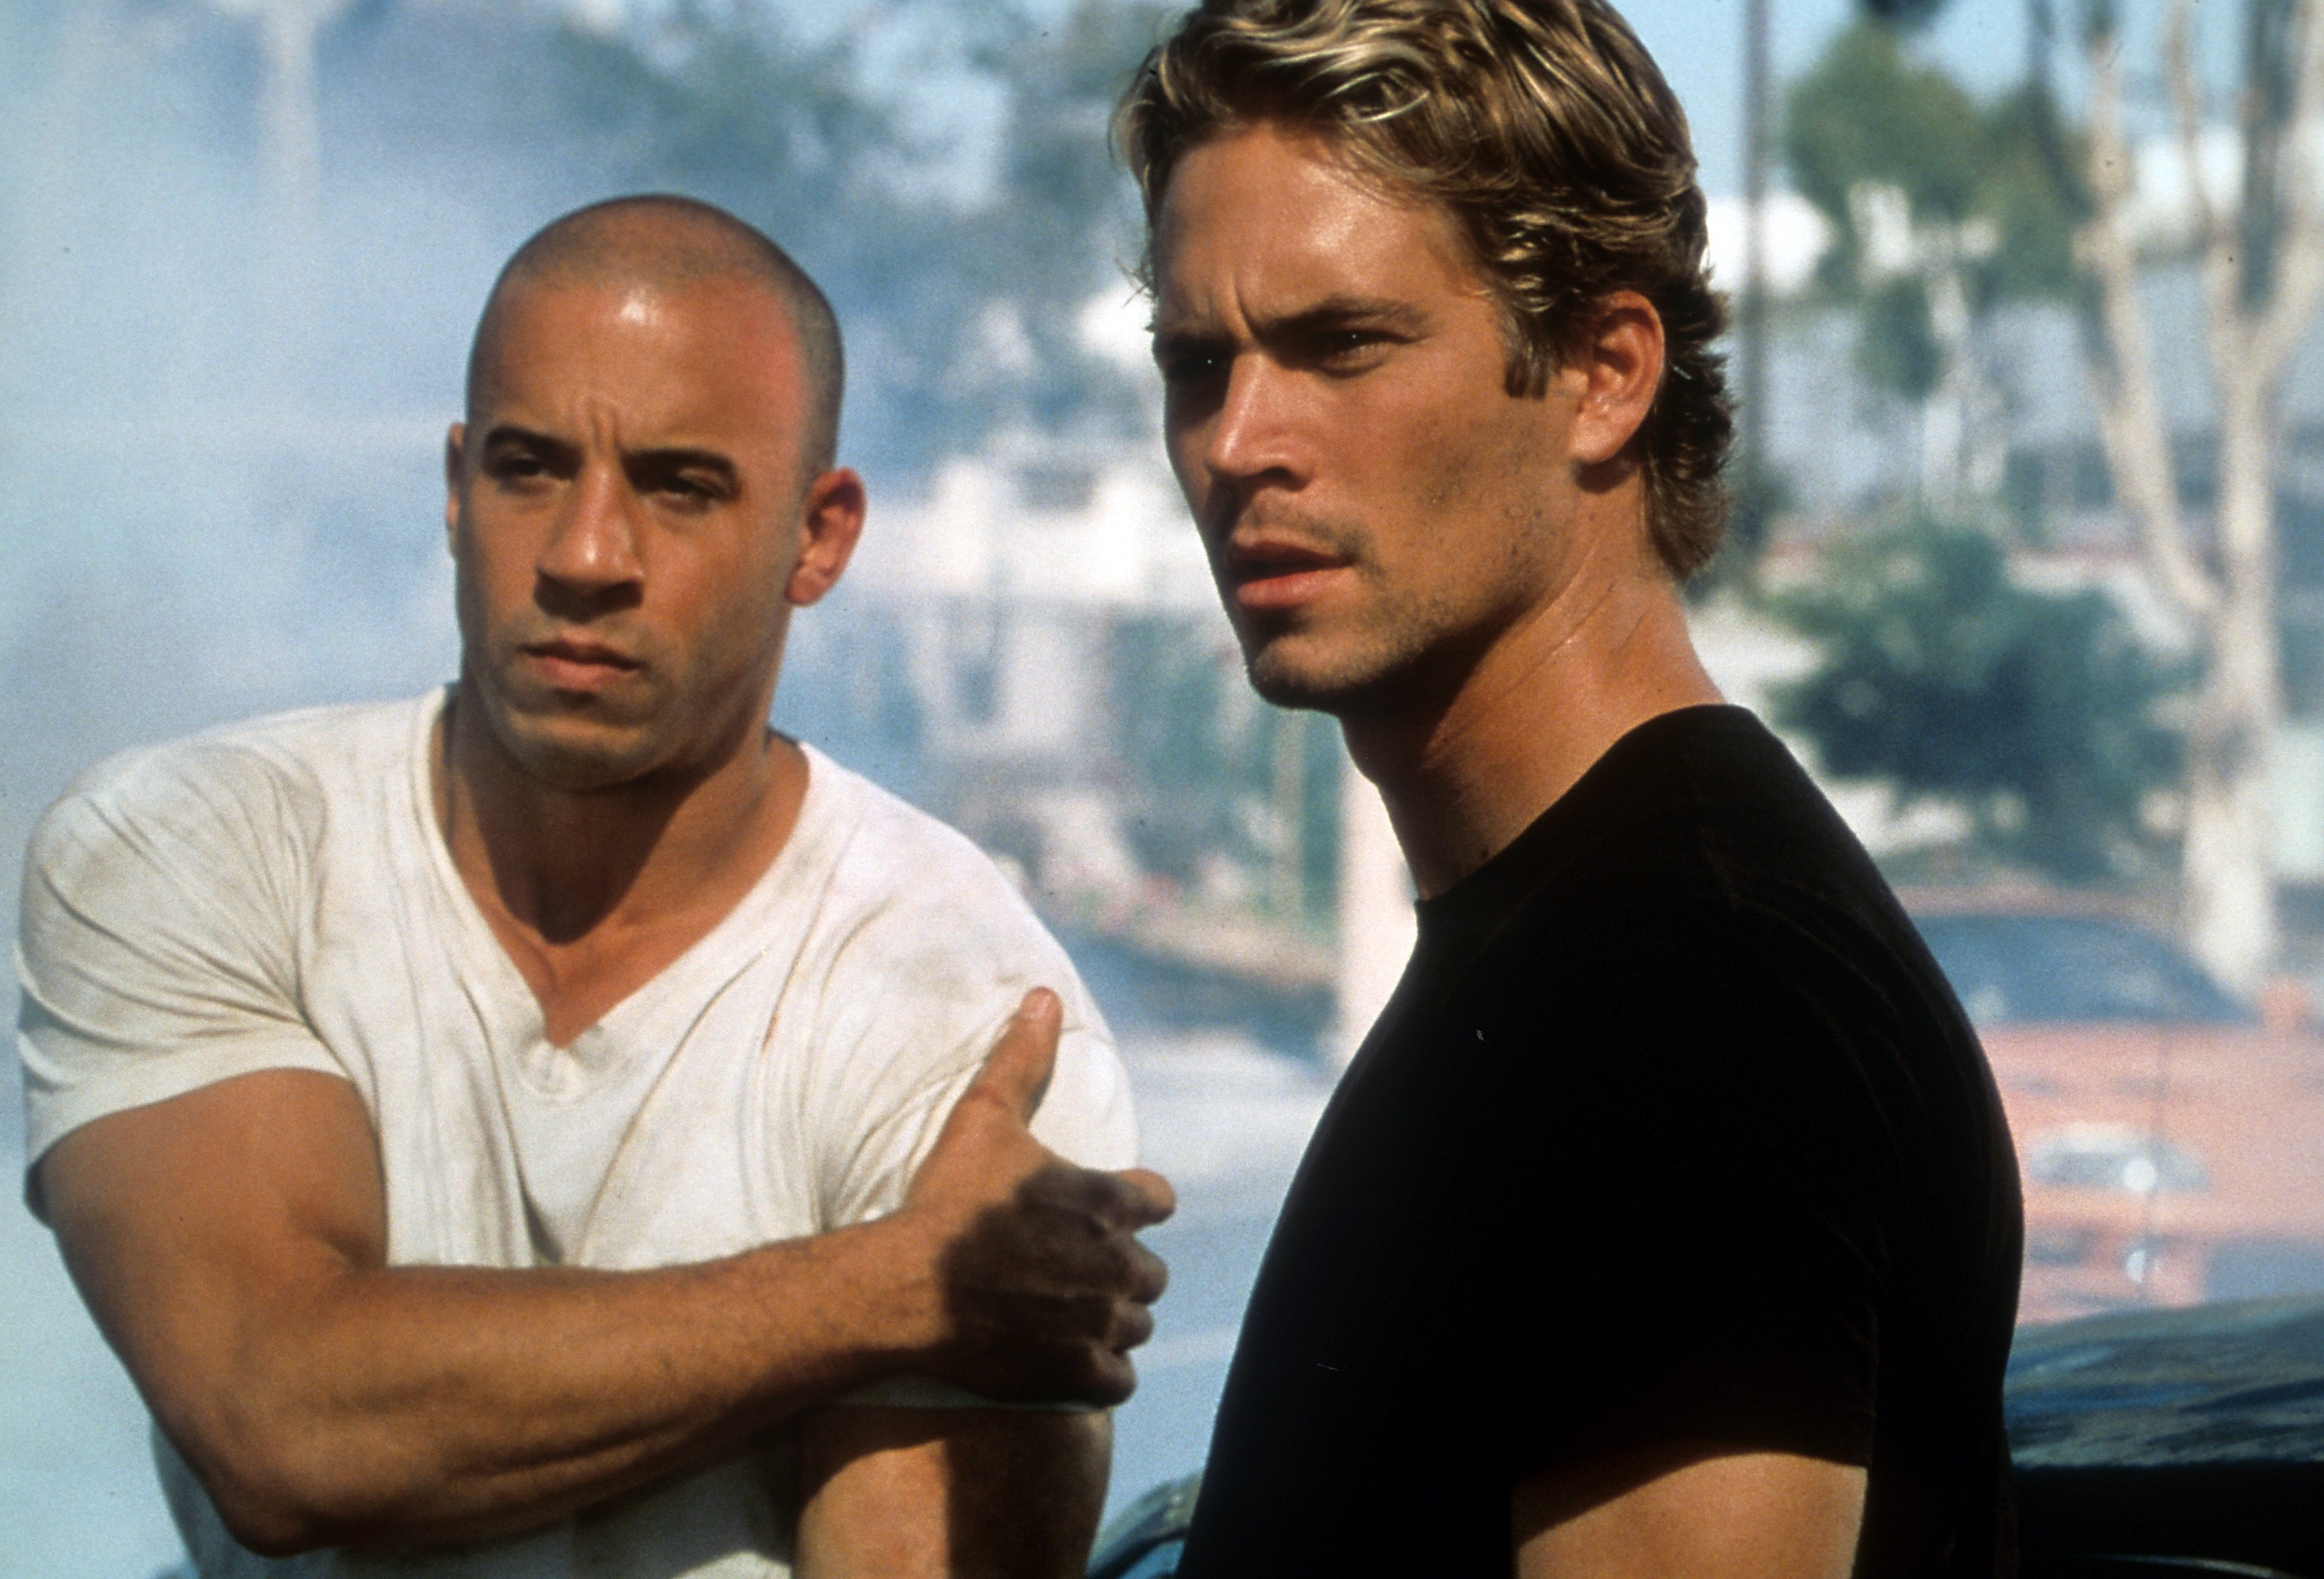 Image Source: Getty Images/ Fast and Furious/Universal Pictures